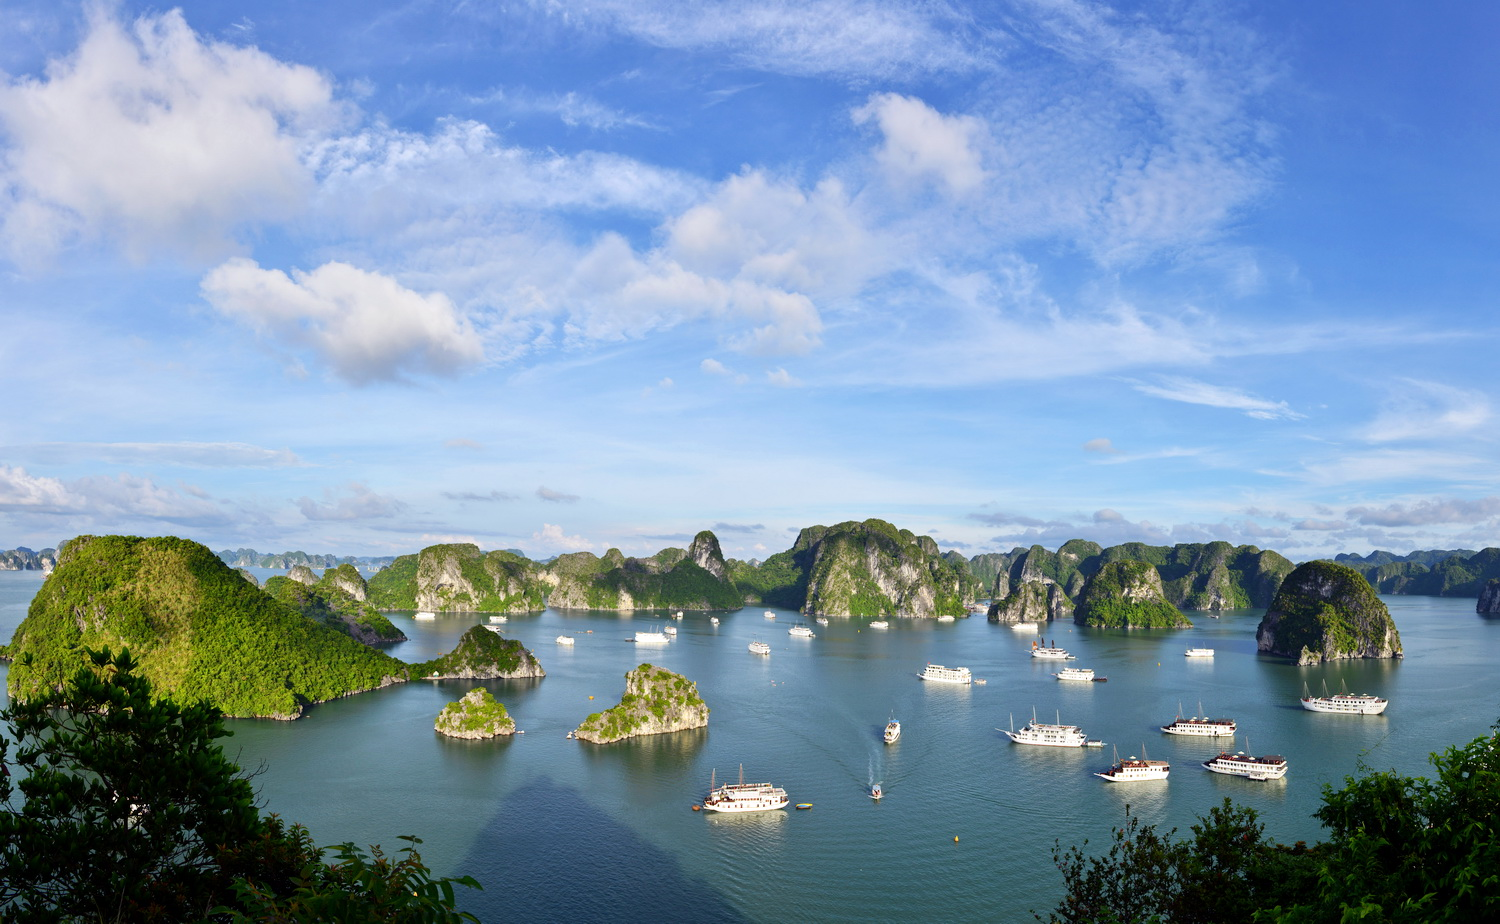 Ha Noi - Hoa Lu - Tam Coc - Ninh Binh - Trang An - Bai Dinh Pagoda - Ninh Binh - Ha Long Bay - Monkey Island Resort Bungalow - Ha Long Bay - Ha Noi 5 Days - 4 Nights